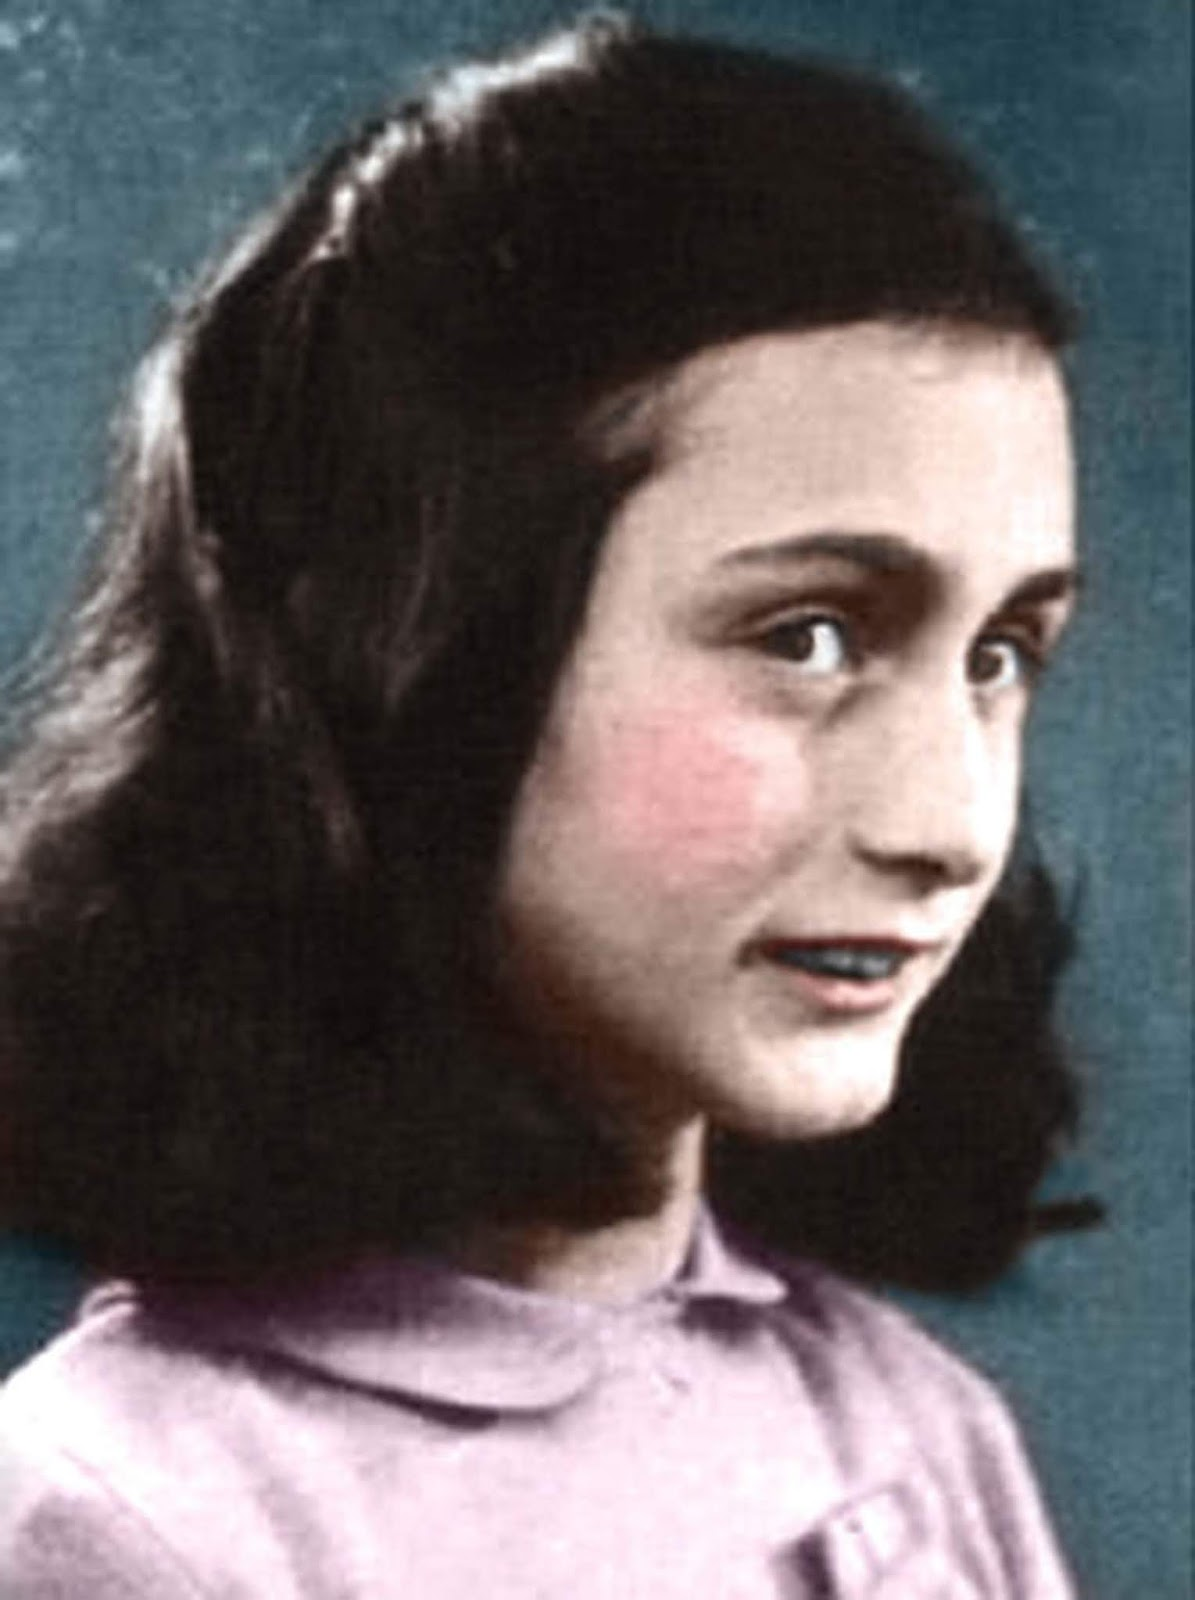 Anne Frank was born in Frankfurt, Germany, the second daughter of Otto Frank (1889–1980) and Edith Frank-Holländer (1900–1945).